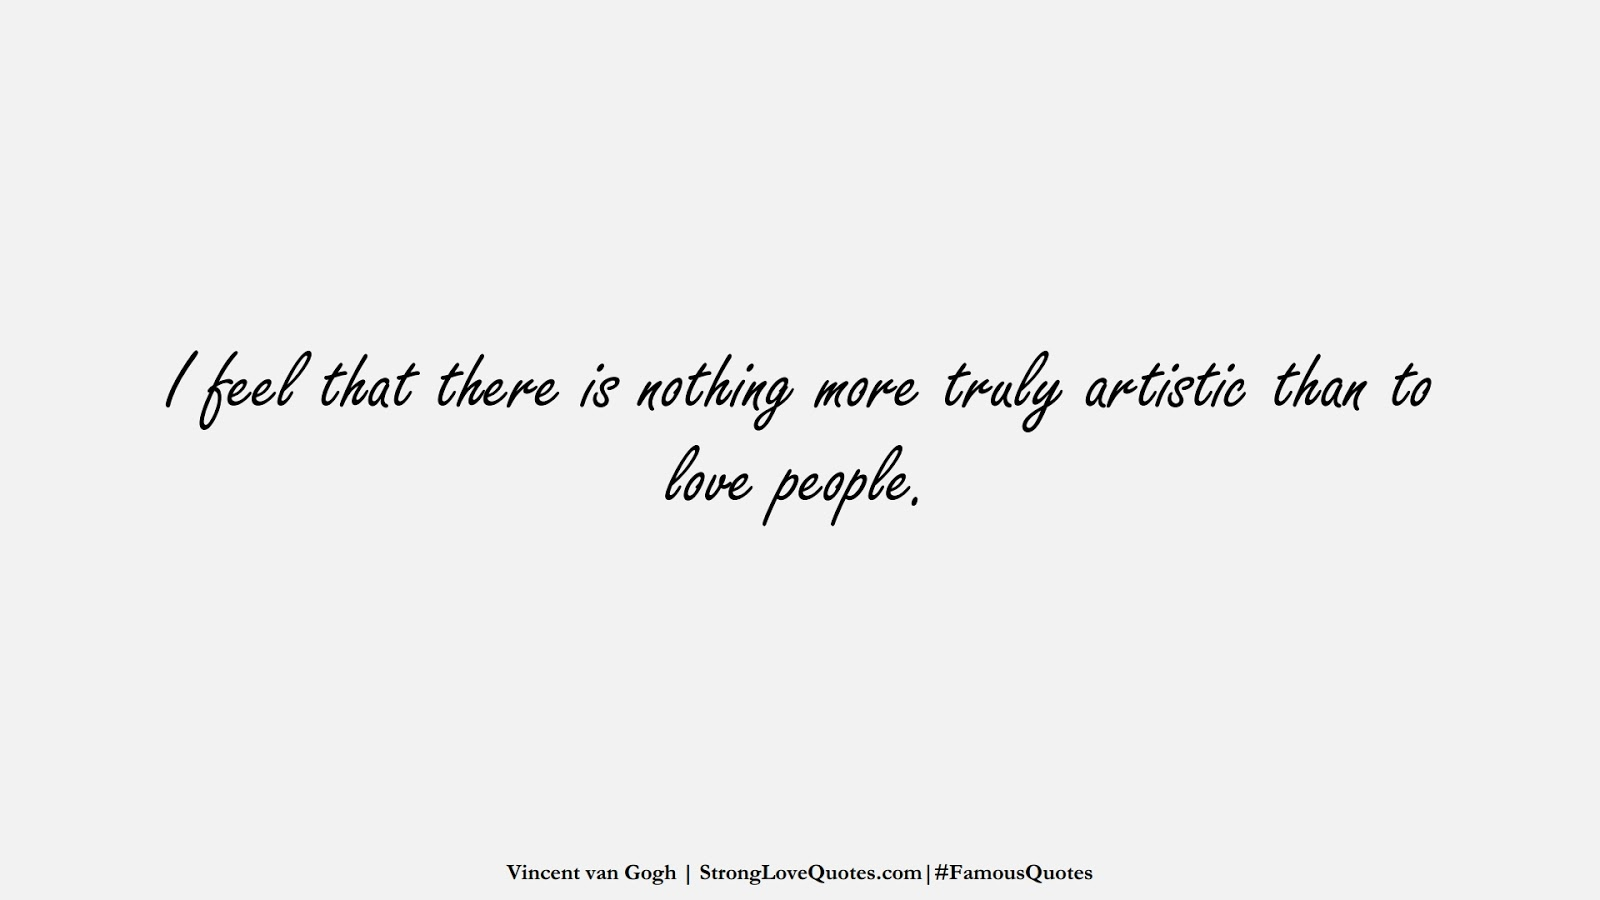 I feel that there is nothing more truly artistic than to love people. (Vincent van Gogh);  #FamousQuotes